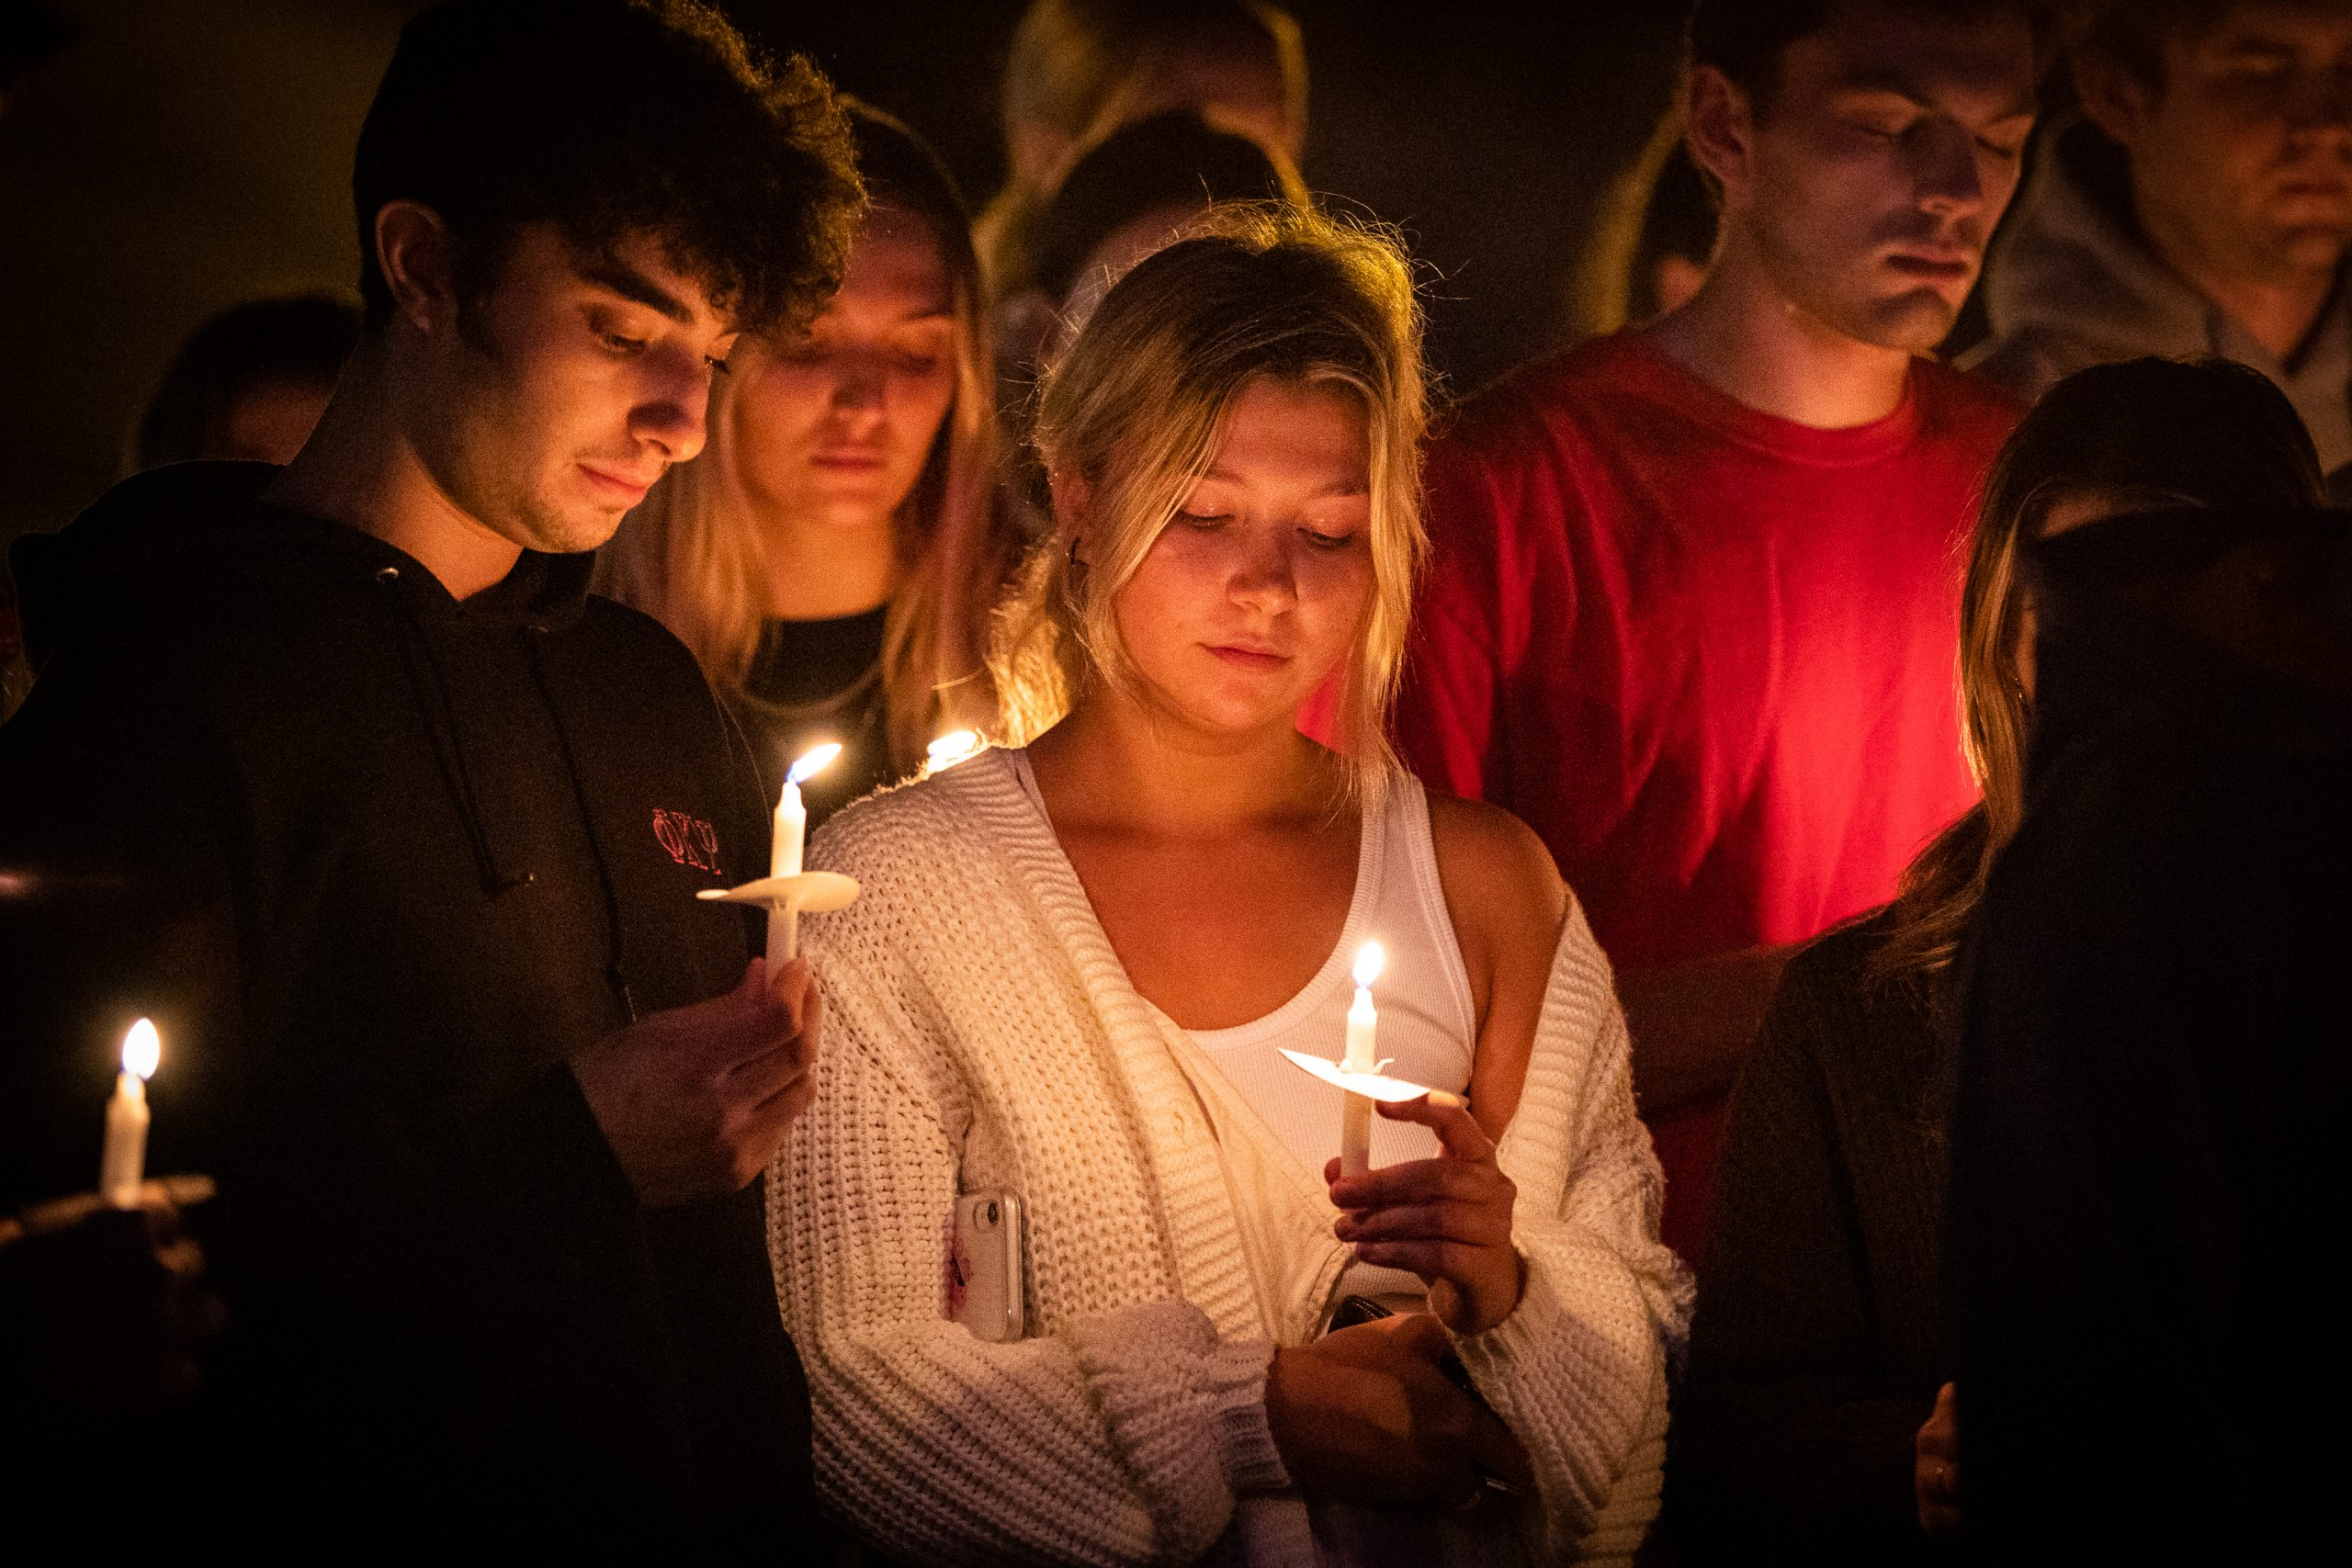 Syracuse University students gathered outside Hendrick's Chapel for a candlelight vigil in honor of Hunter Brooks Watson and Vincent Gian Maugeri, two brothers of the Phi Kappa Psi fraternity who lost their lives to distracted driving.